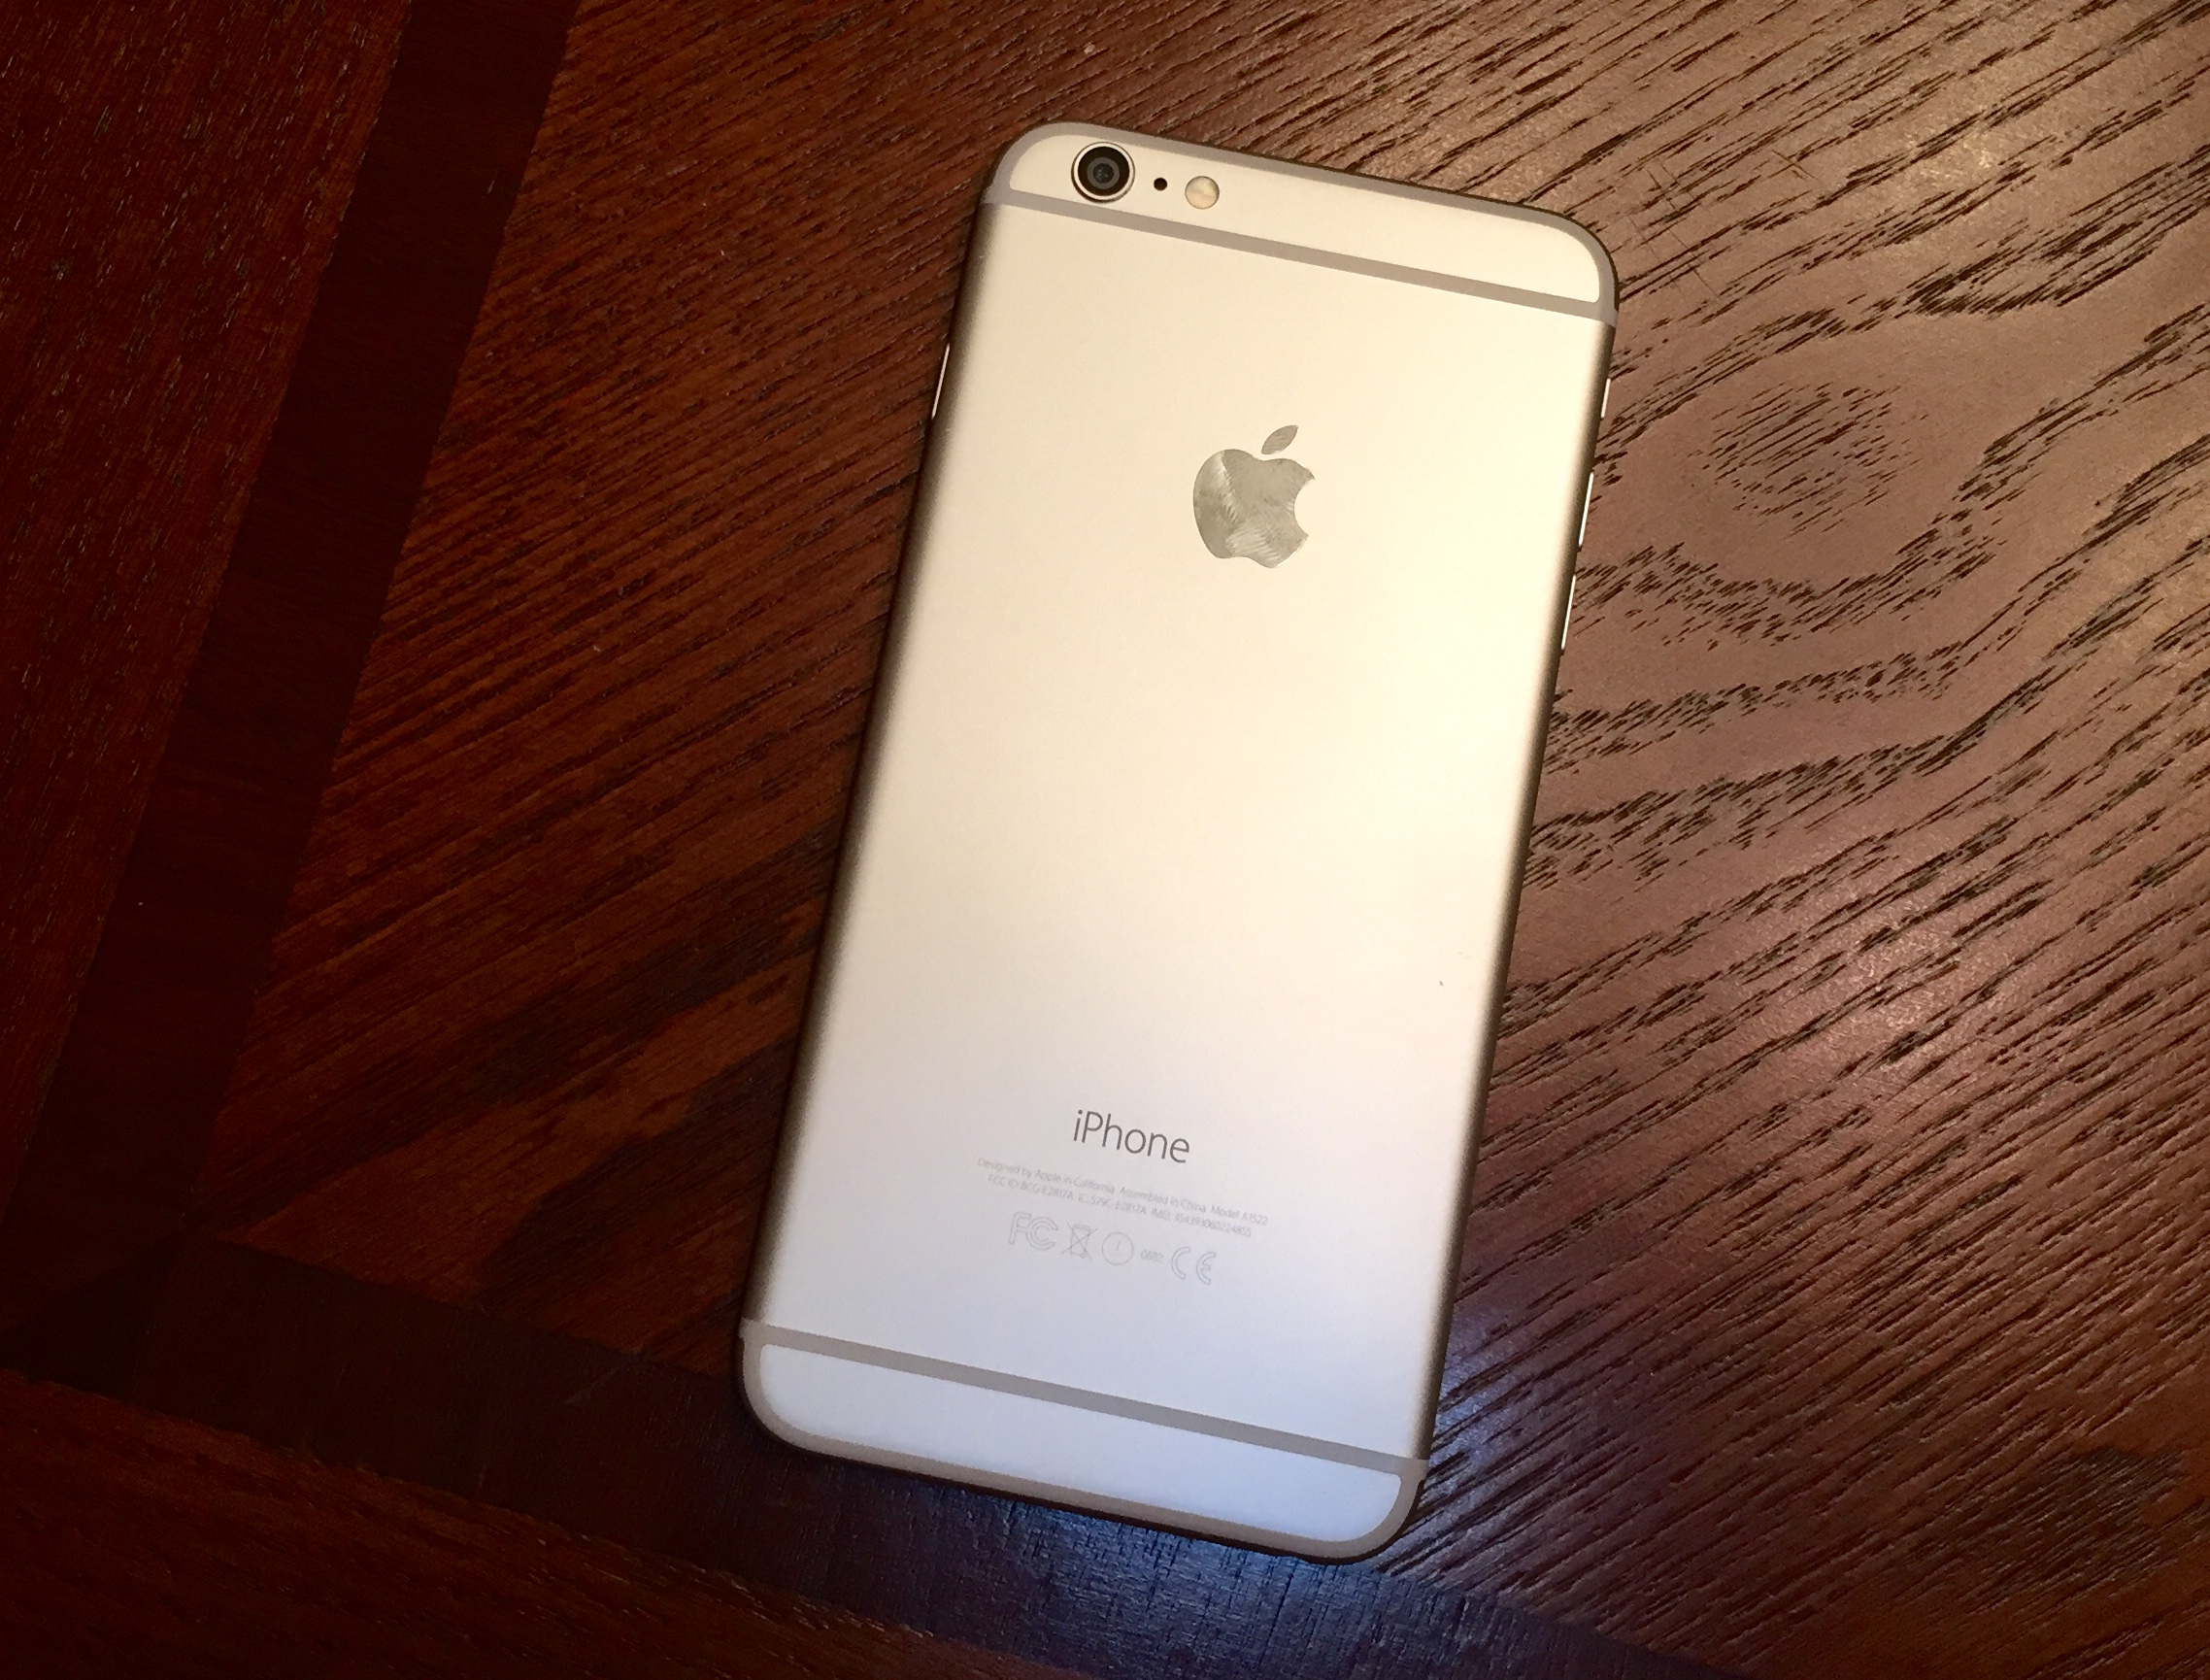 What you need to know about the iPhone 6 Plus iOS 8.4.1 update.